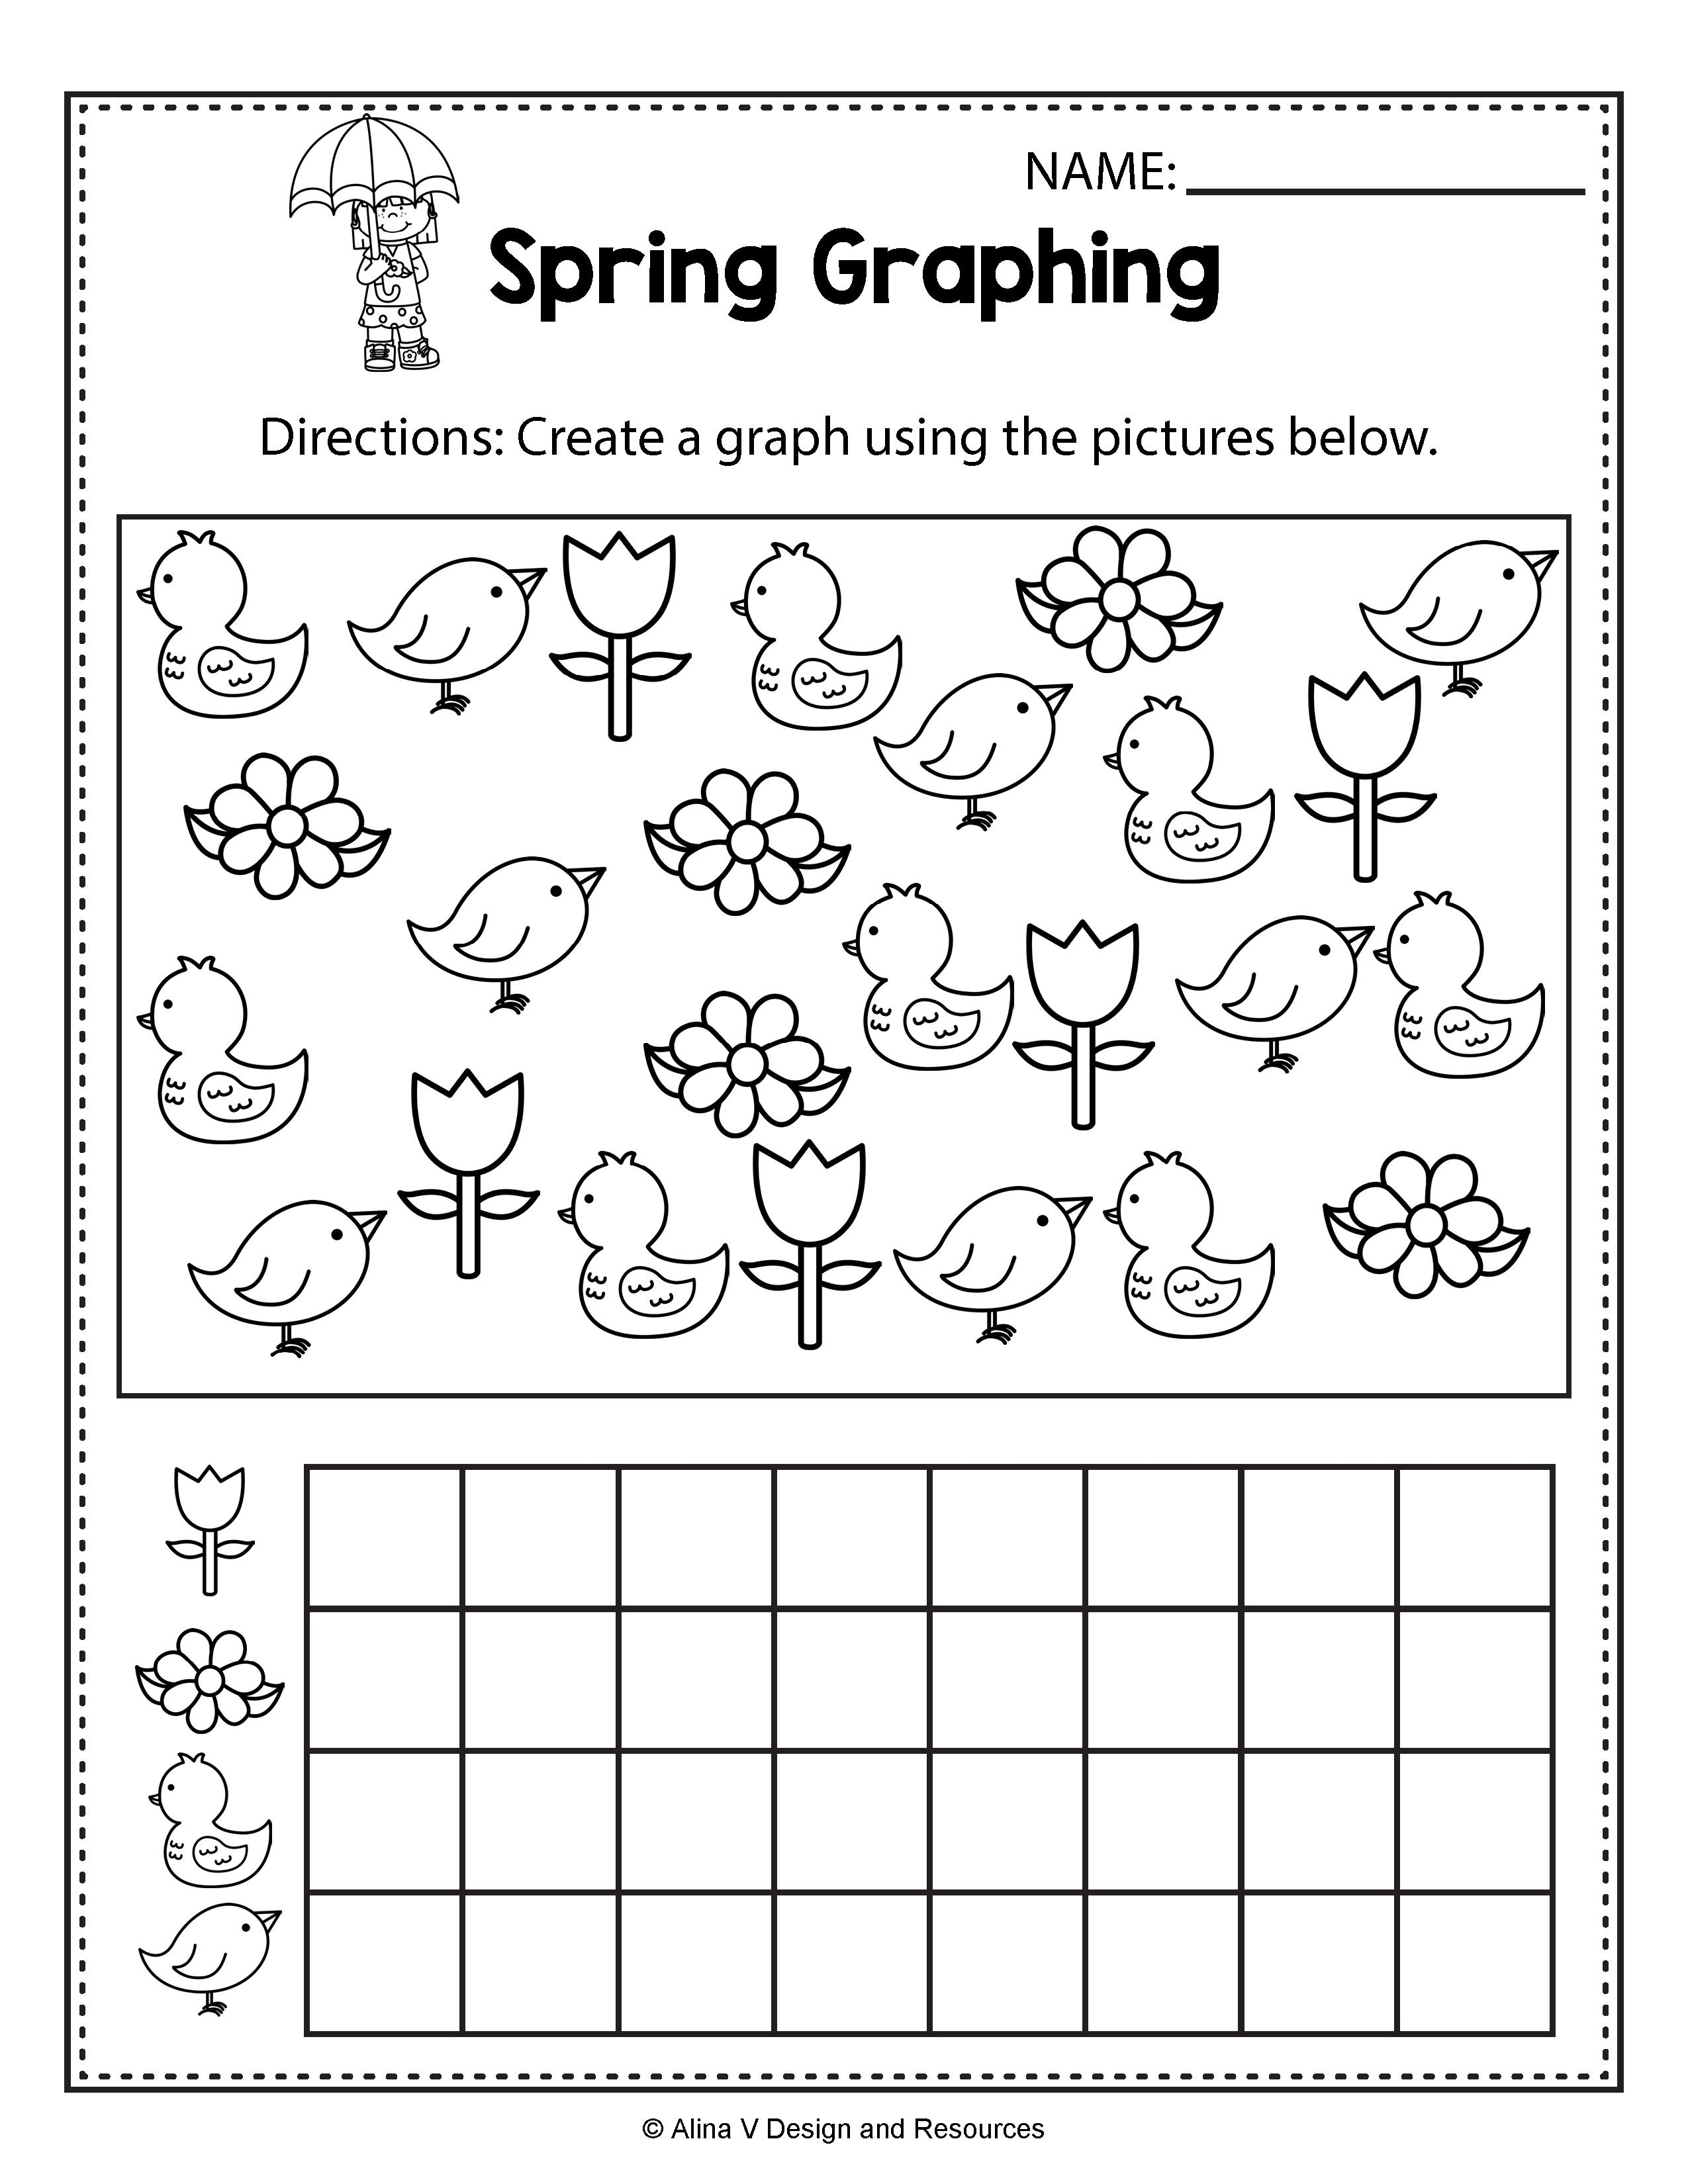 Spring Graphing Spring Math Worksheets And Activities For